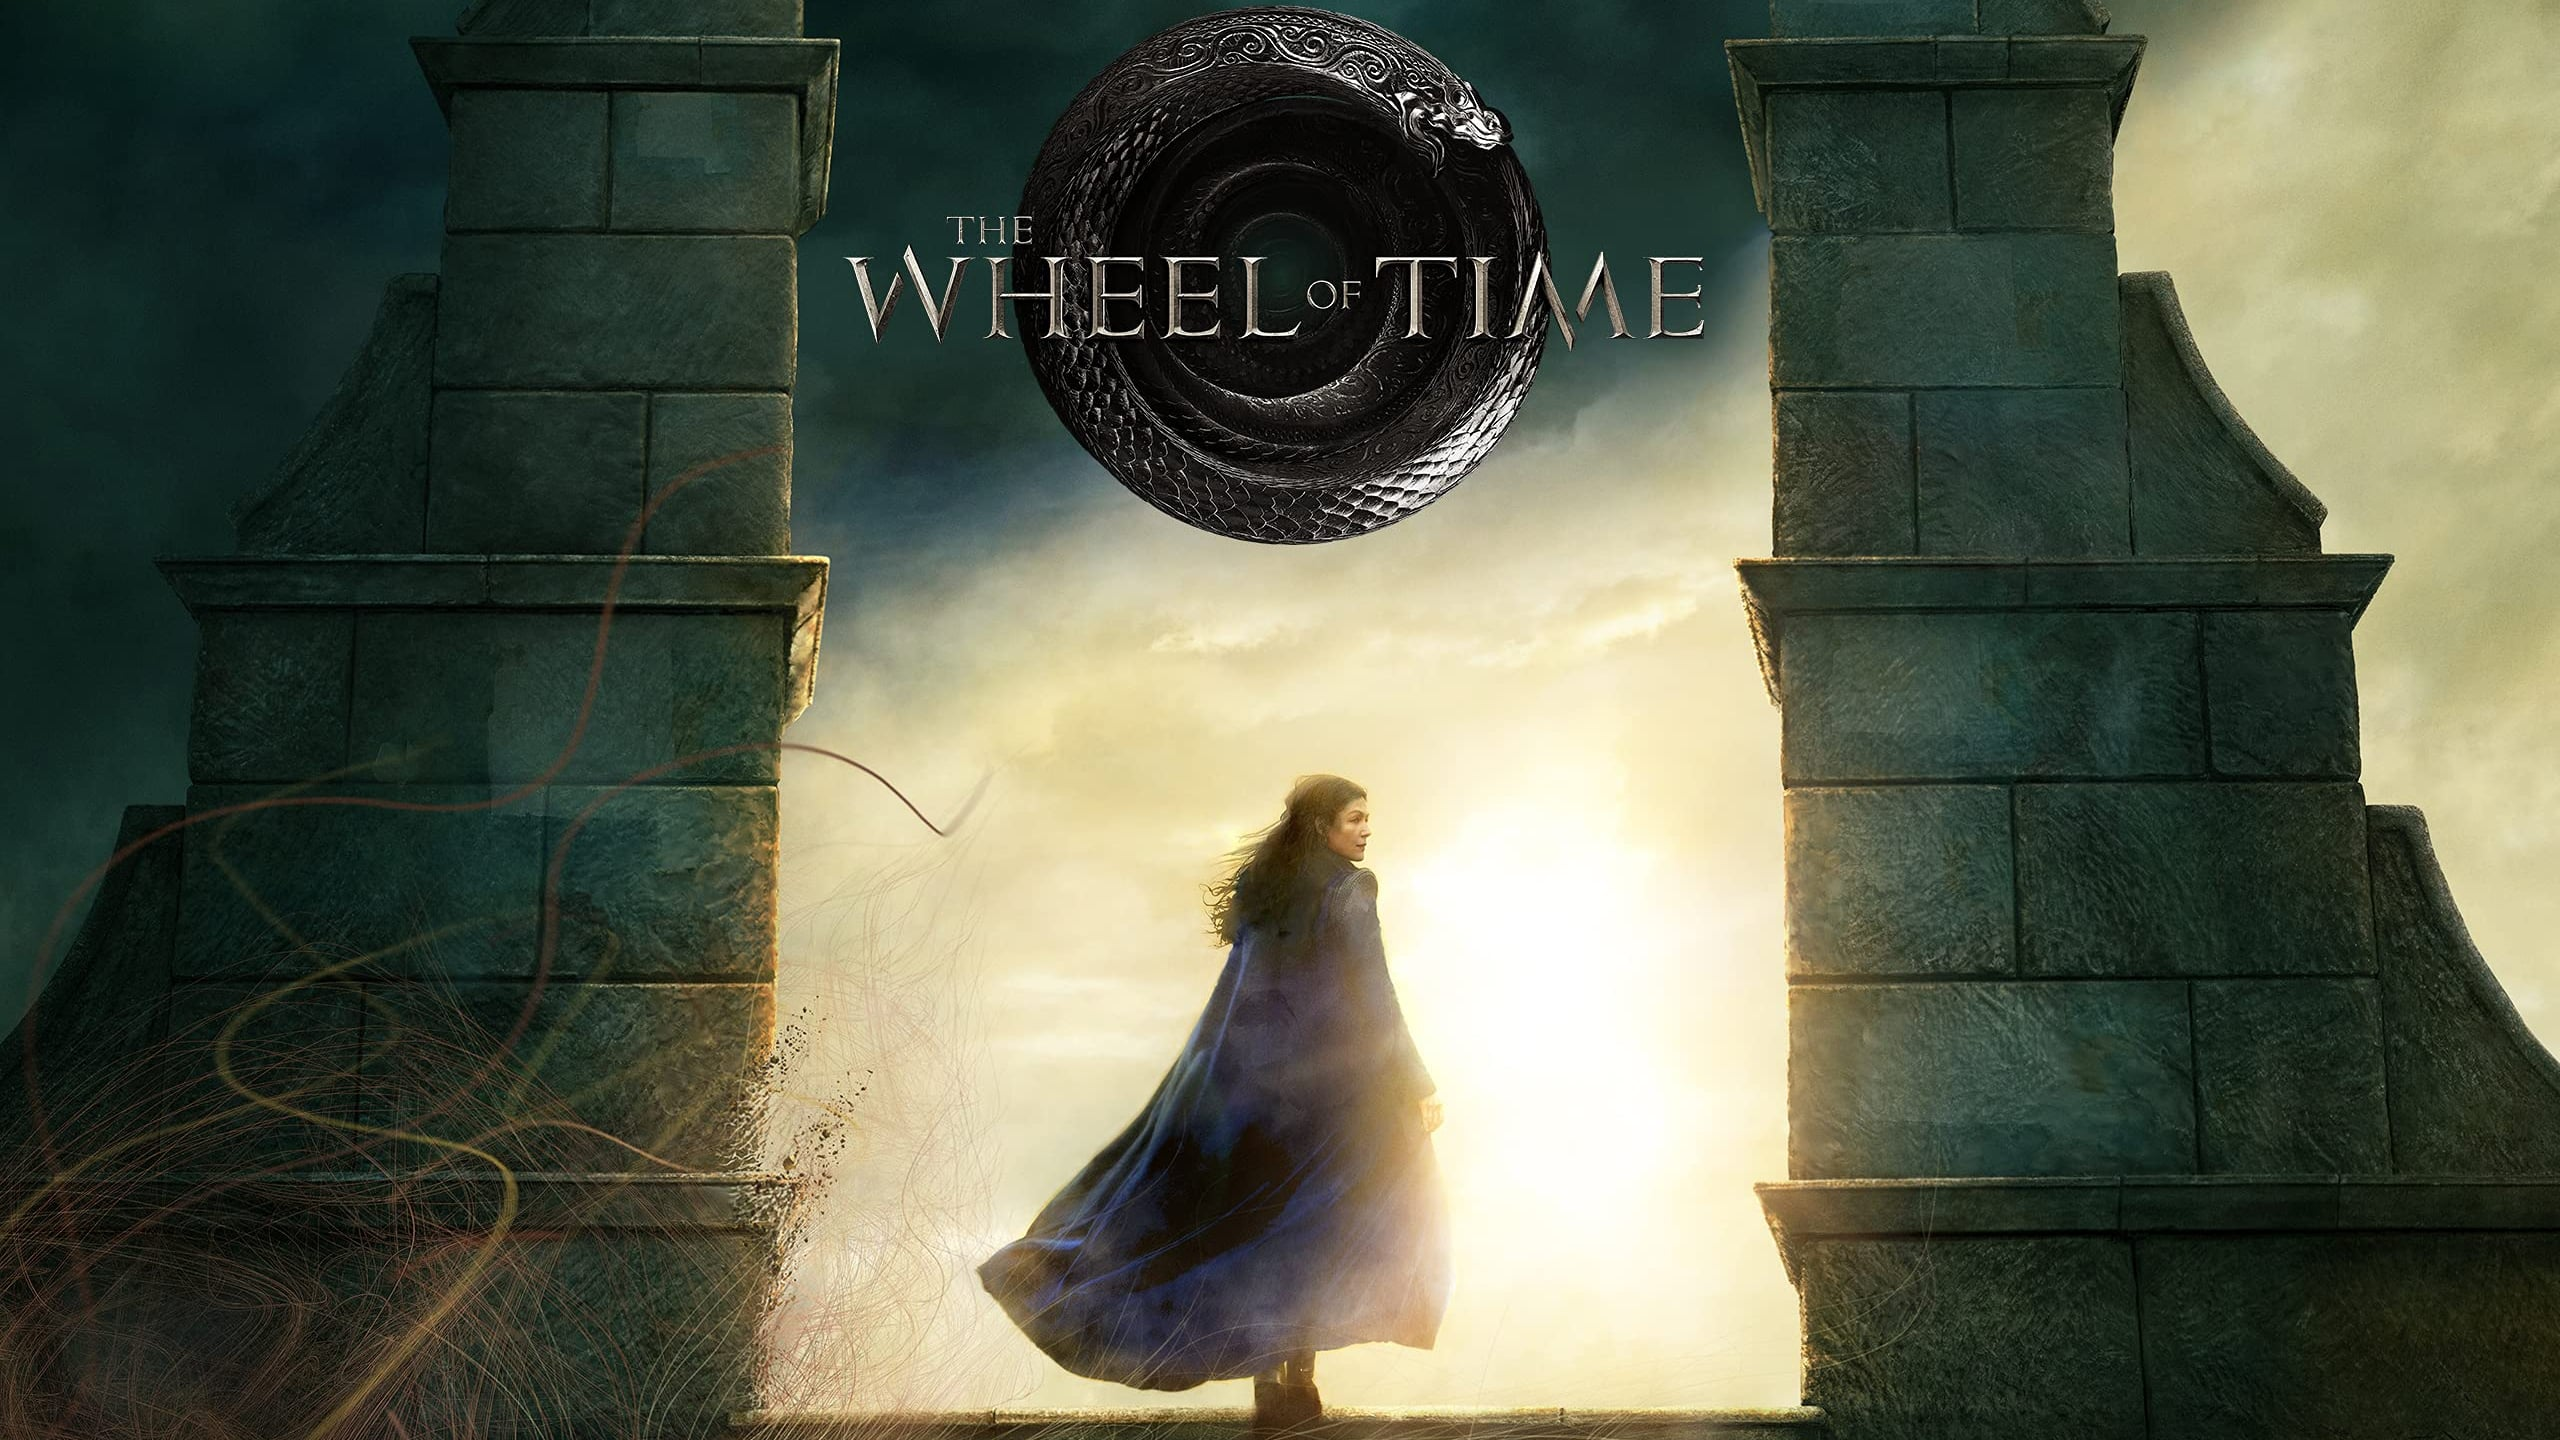 Premiere date and teaser trailer for The Wheel of Time